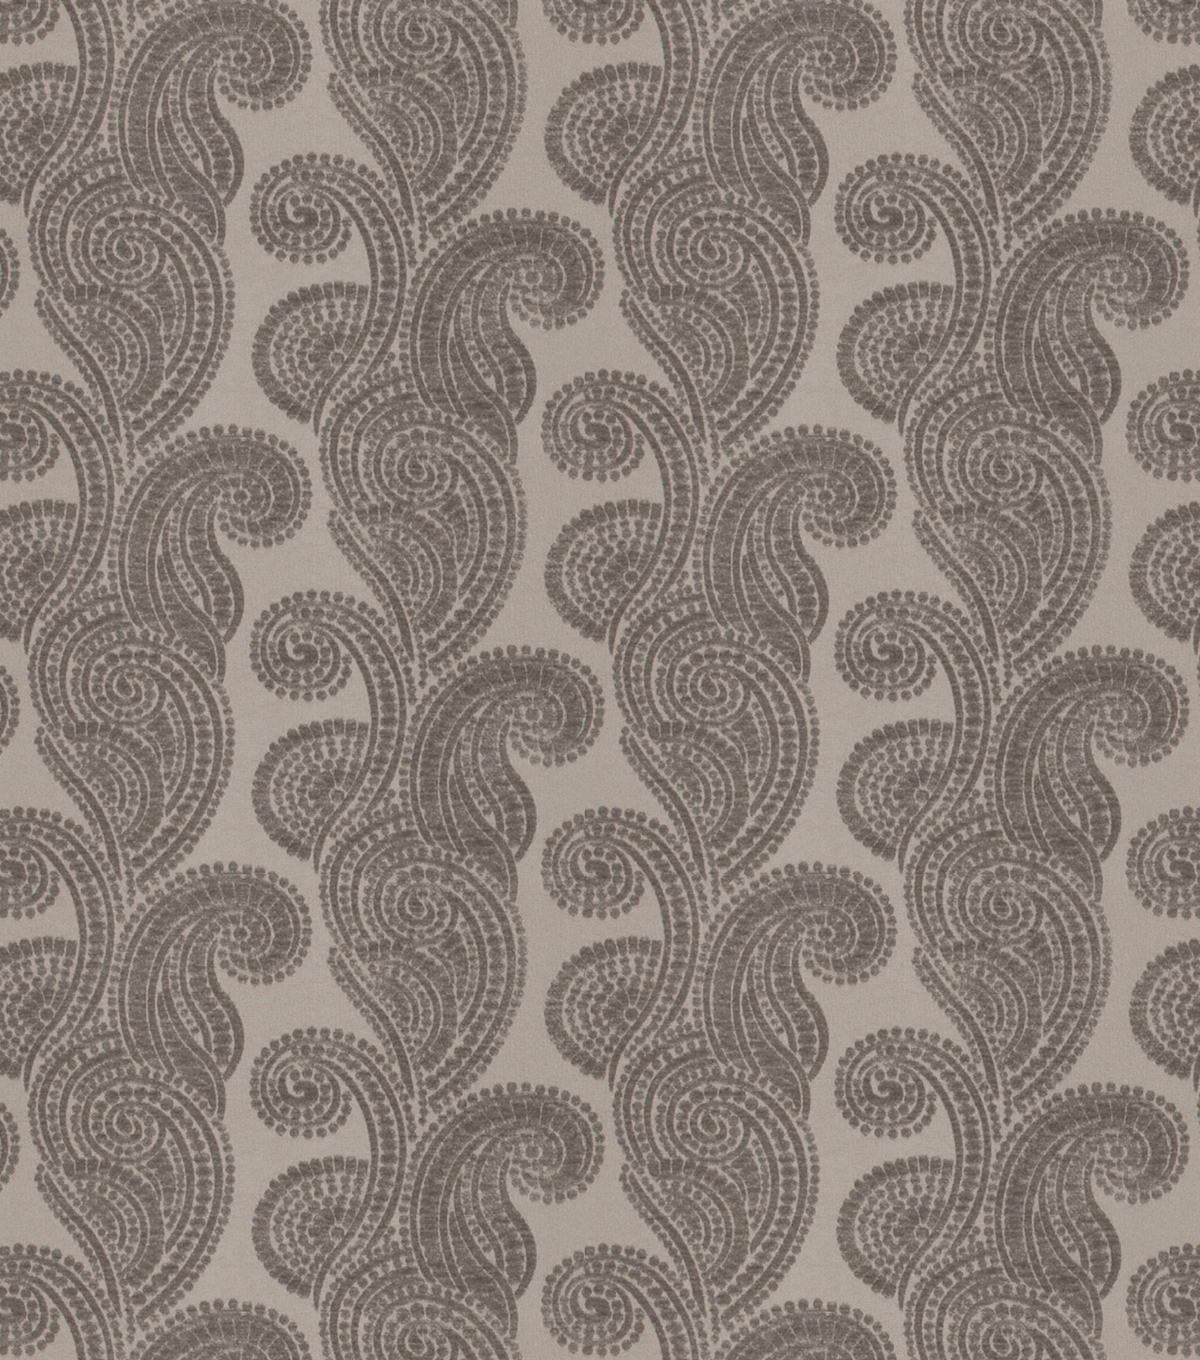 Eaton Square Upholstery Fabric 56\u0022-Flower Song/Silver